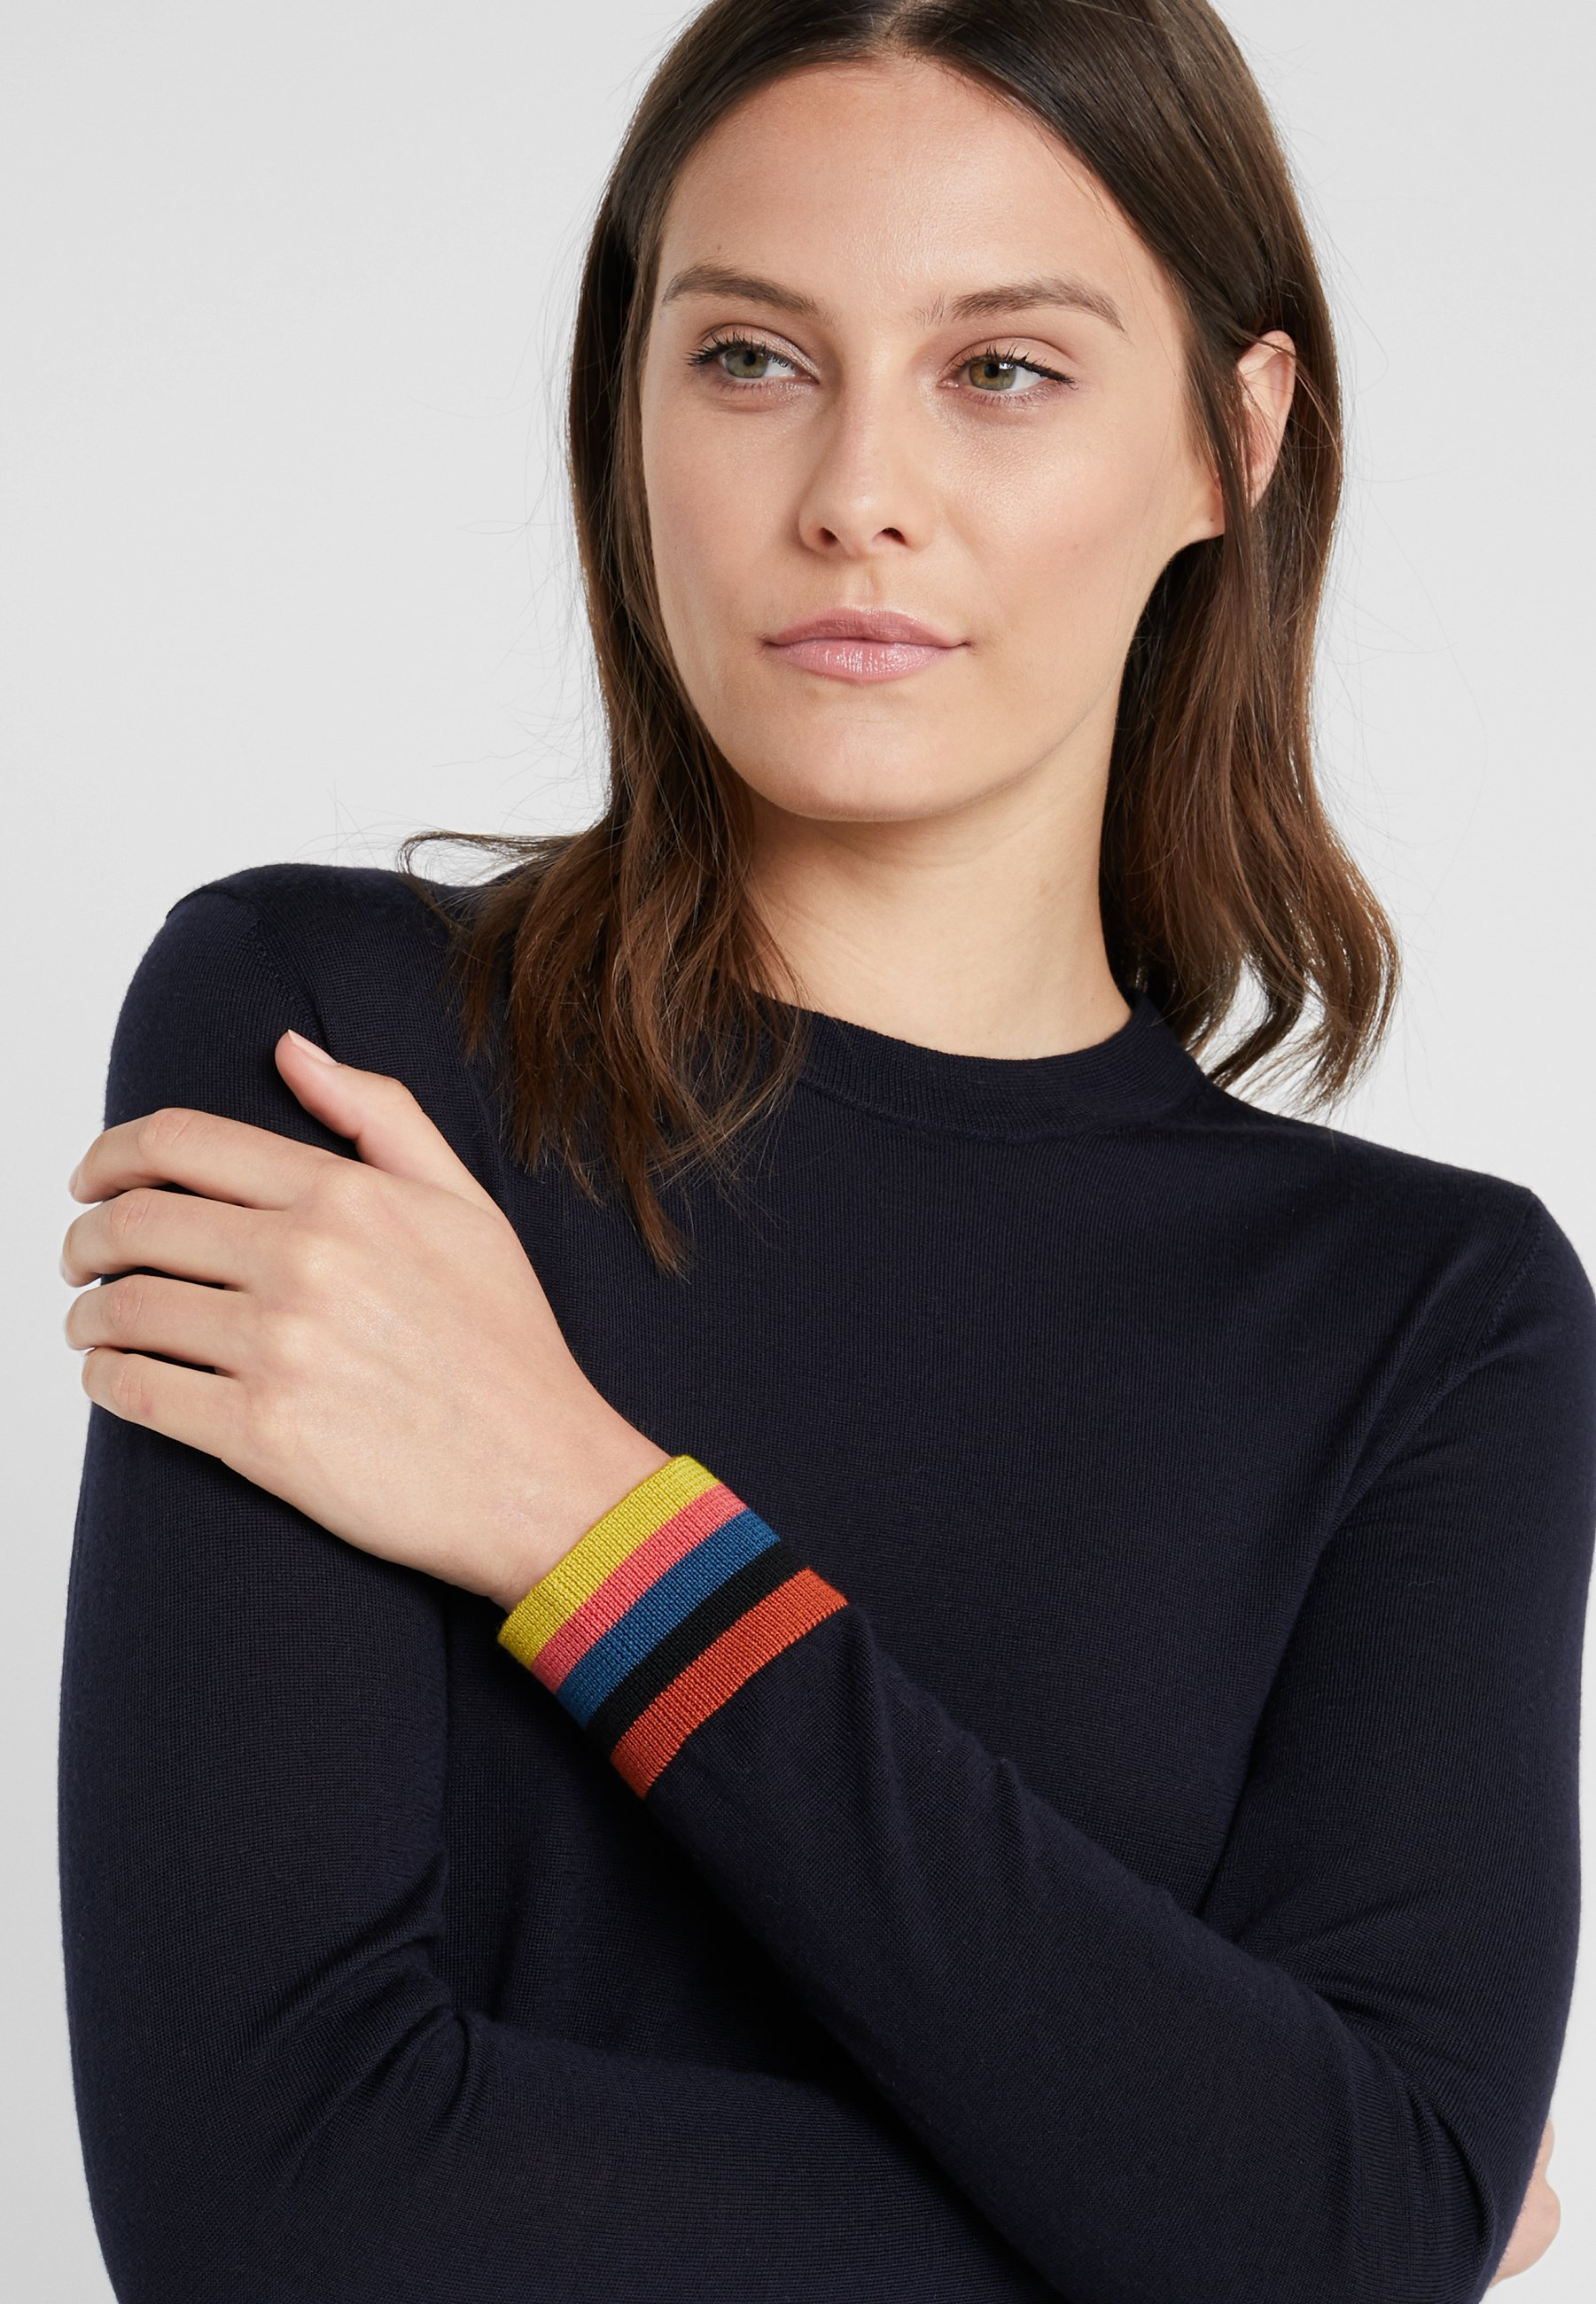 Navy Maglione Navy Paul Paul Smith Smith Paul Smith Maglione Maglione iOPXZTuwkl